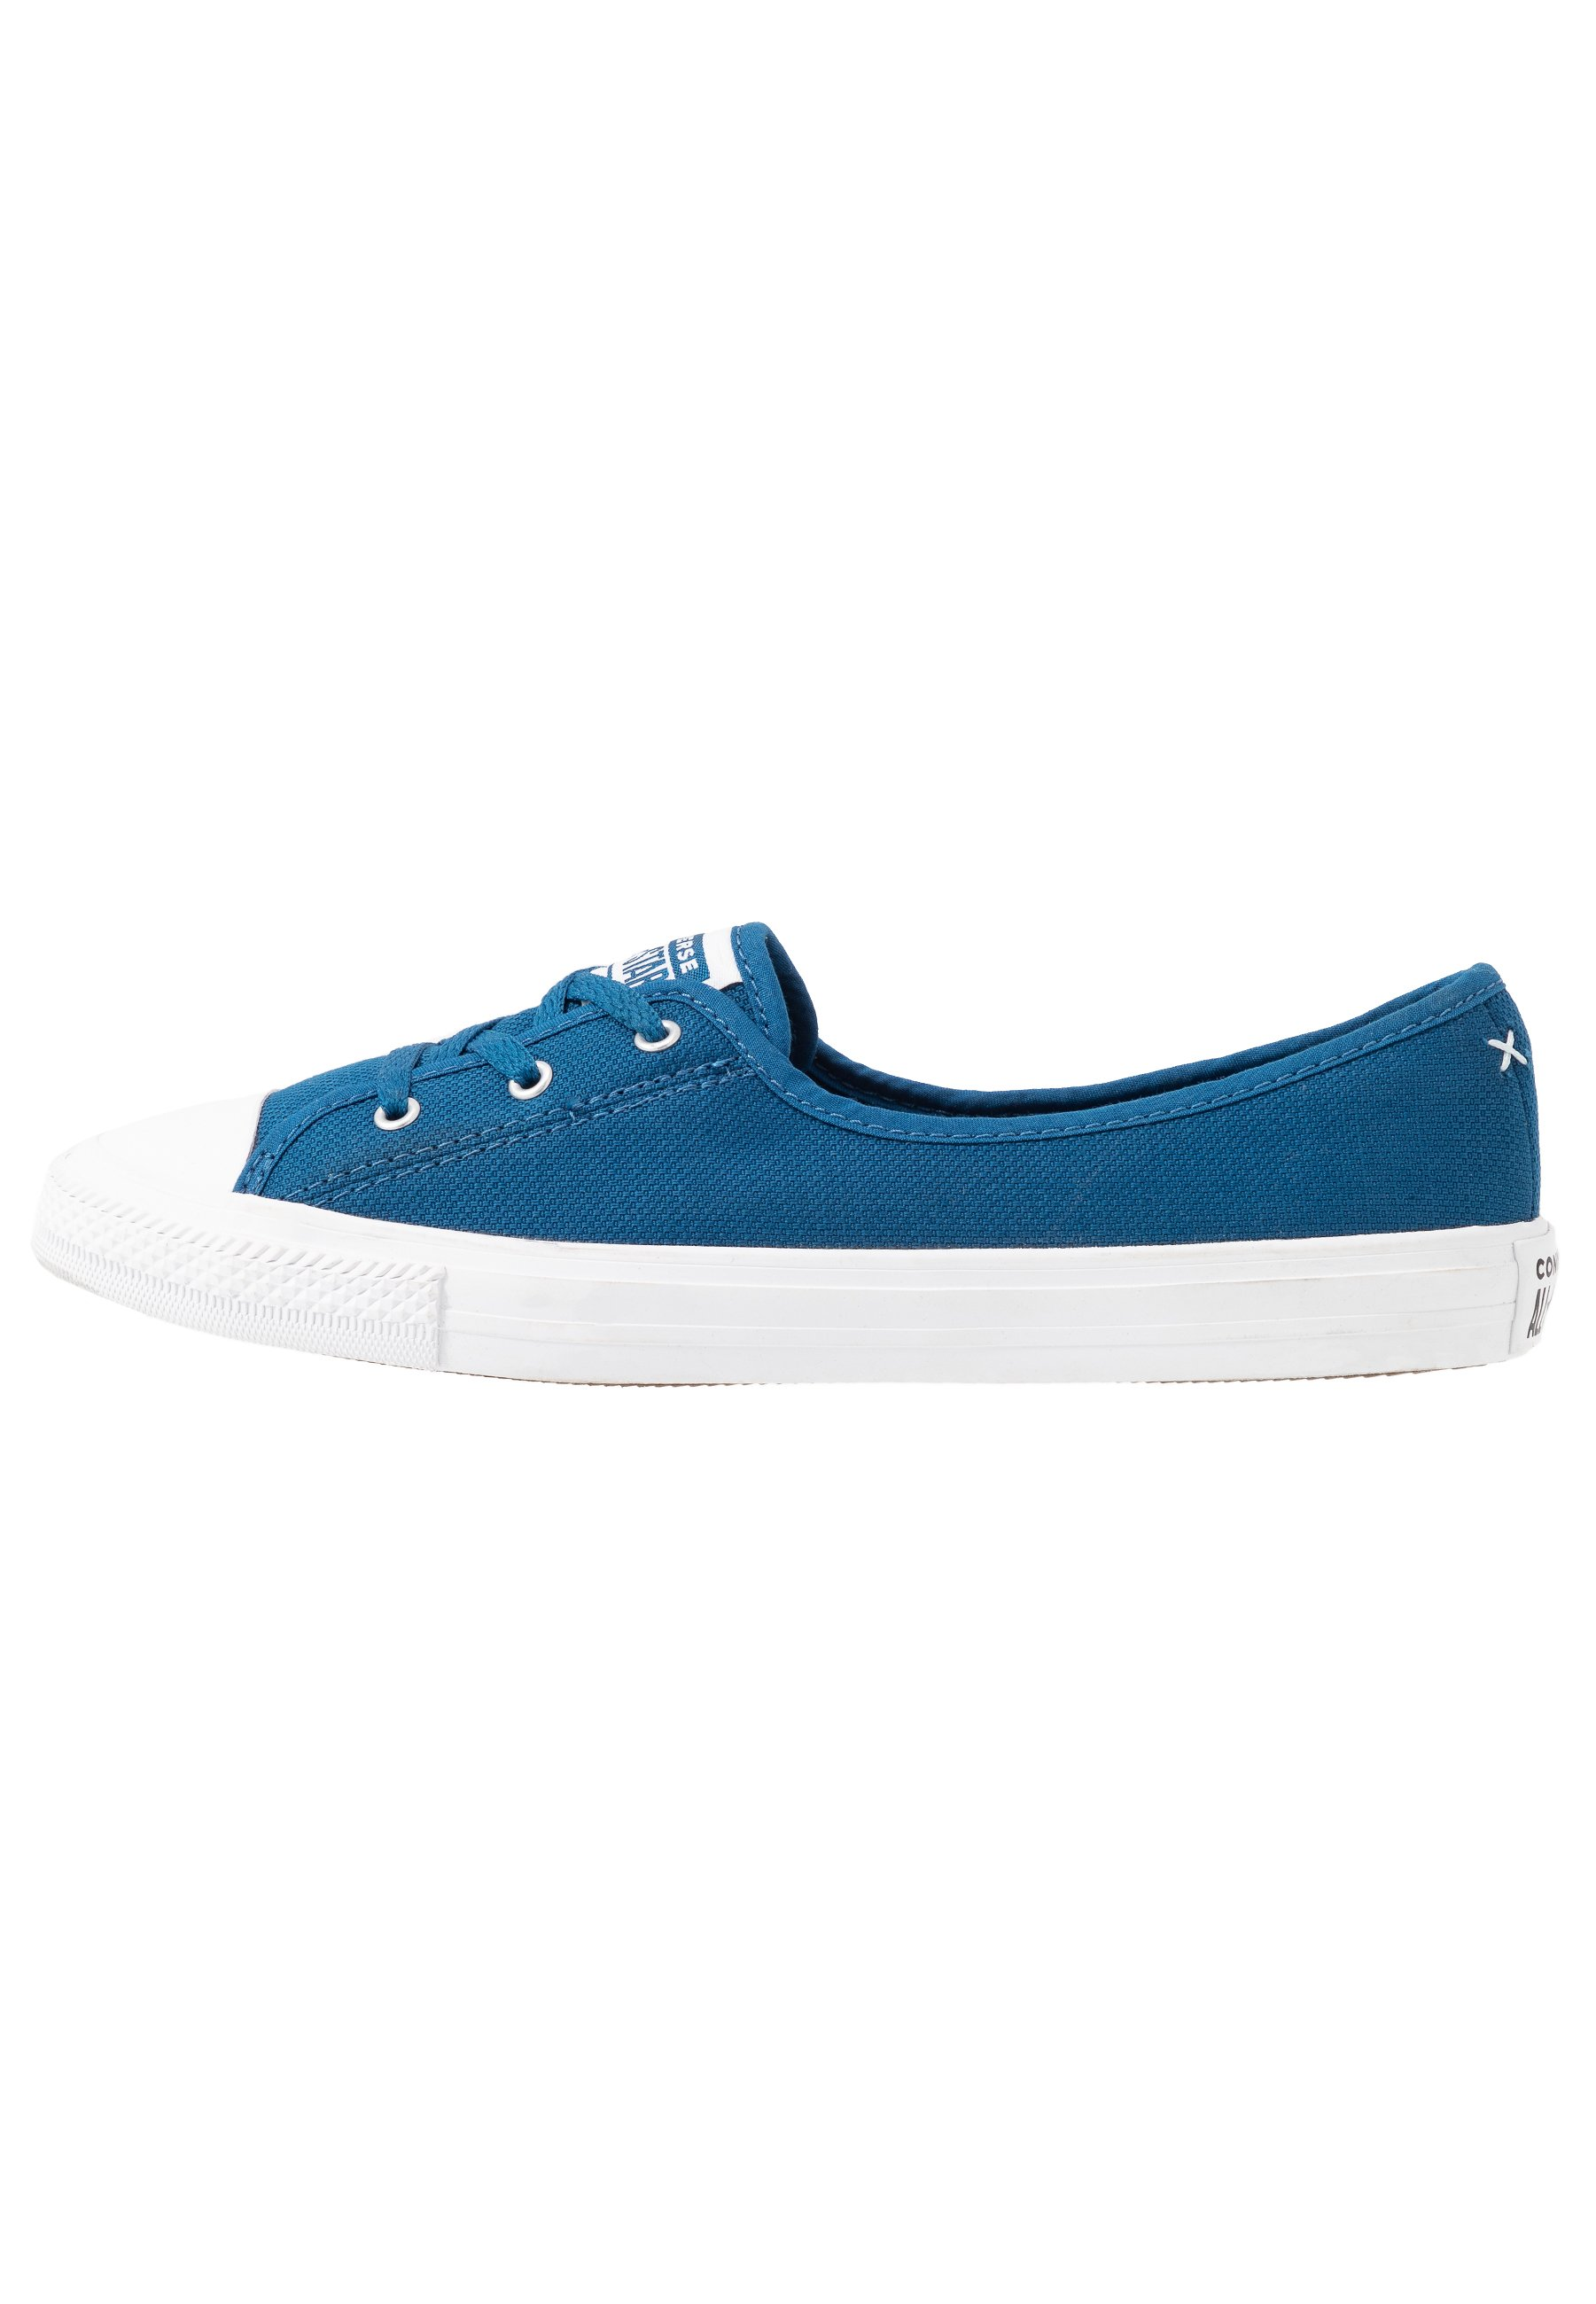 CHUCK TAYLOR ALL STAR BALLET LACE Sneakers laag court blueagate bluewhite